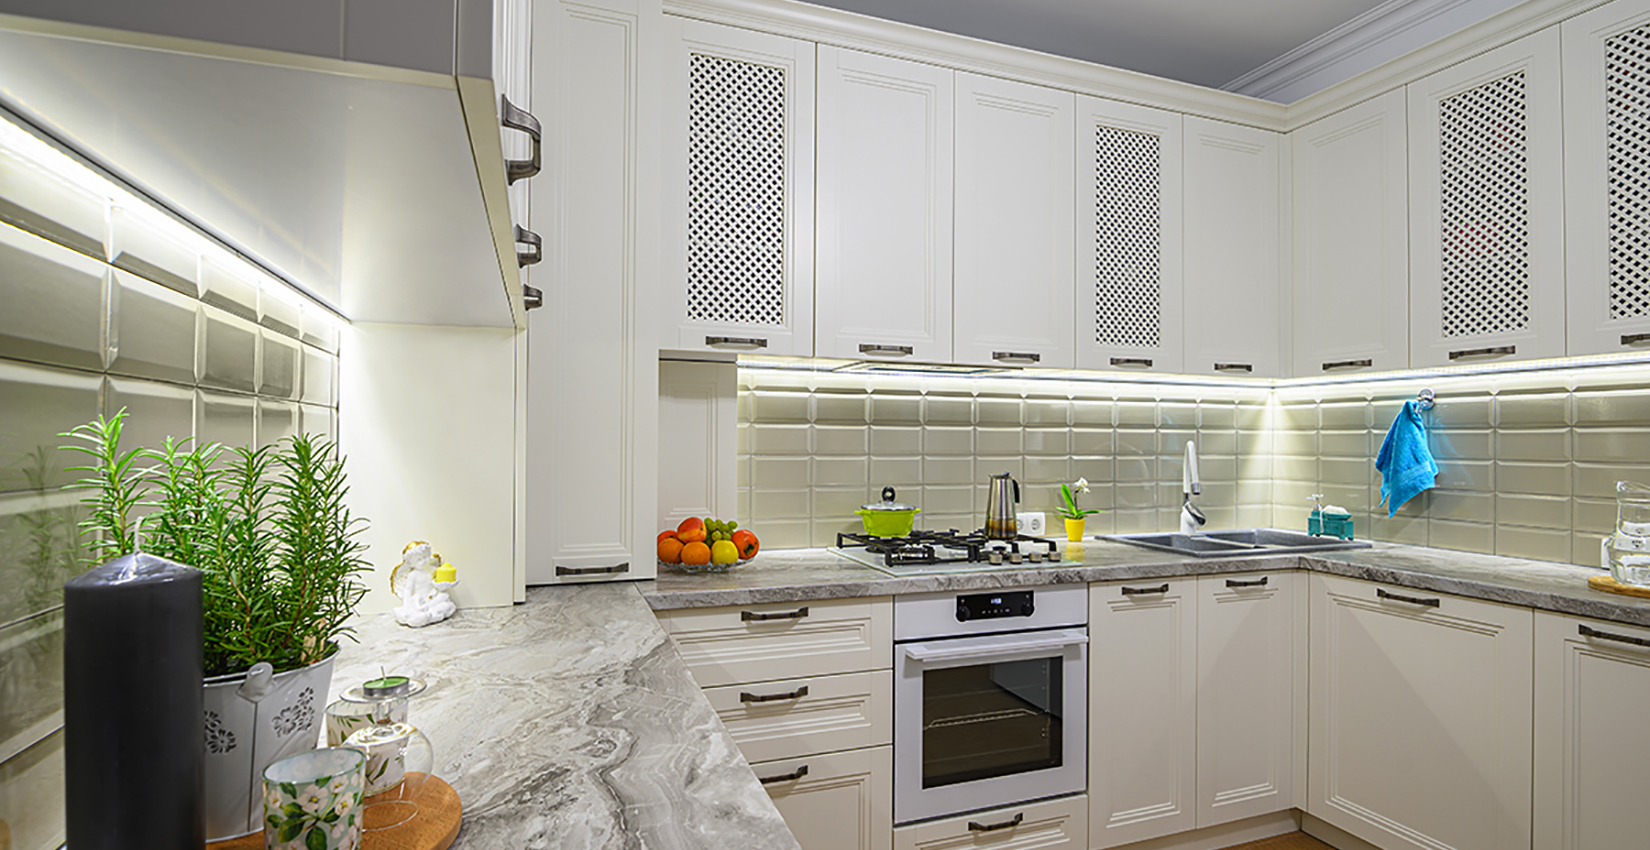 Adding task lighting in the Kitchen is an excellent choice in home renovation.